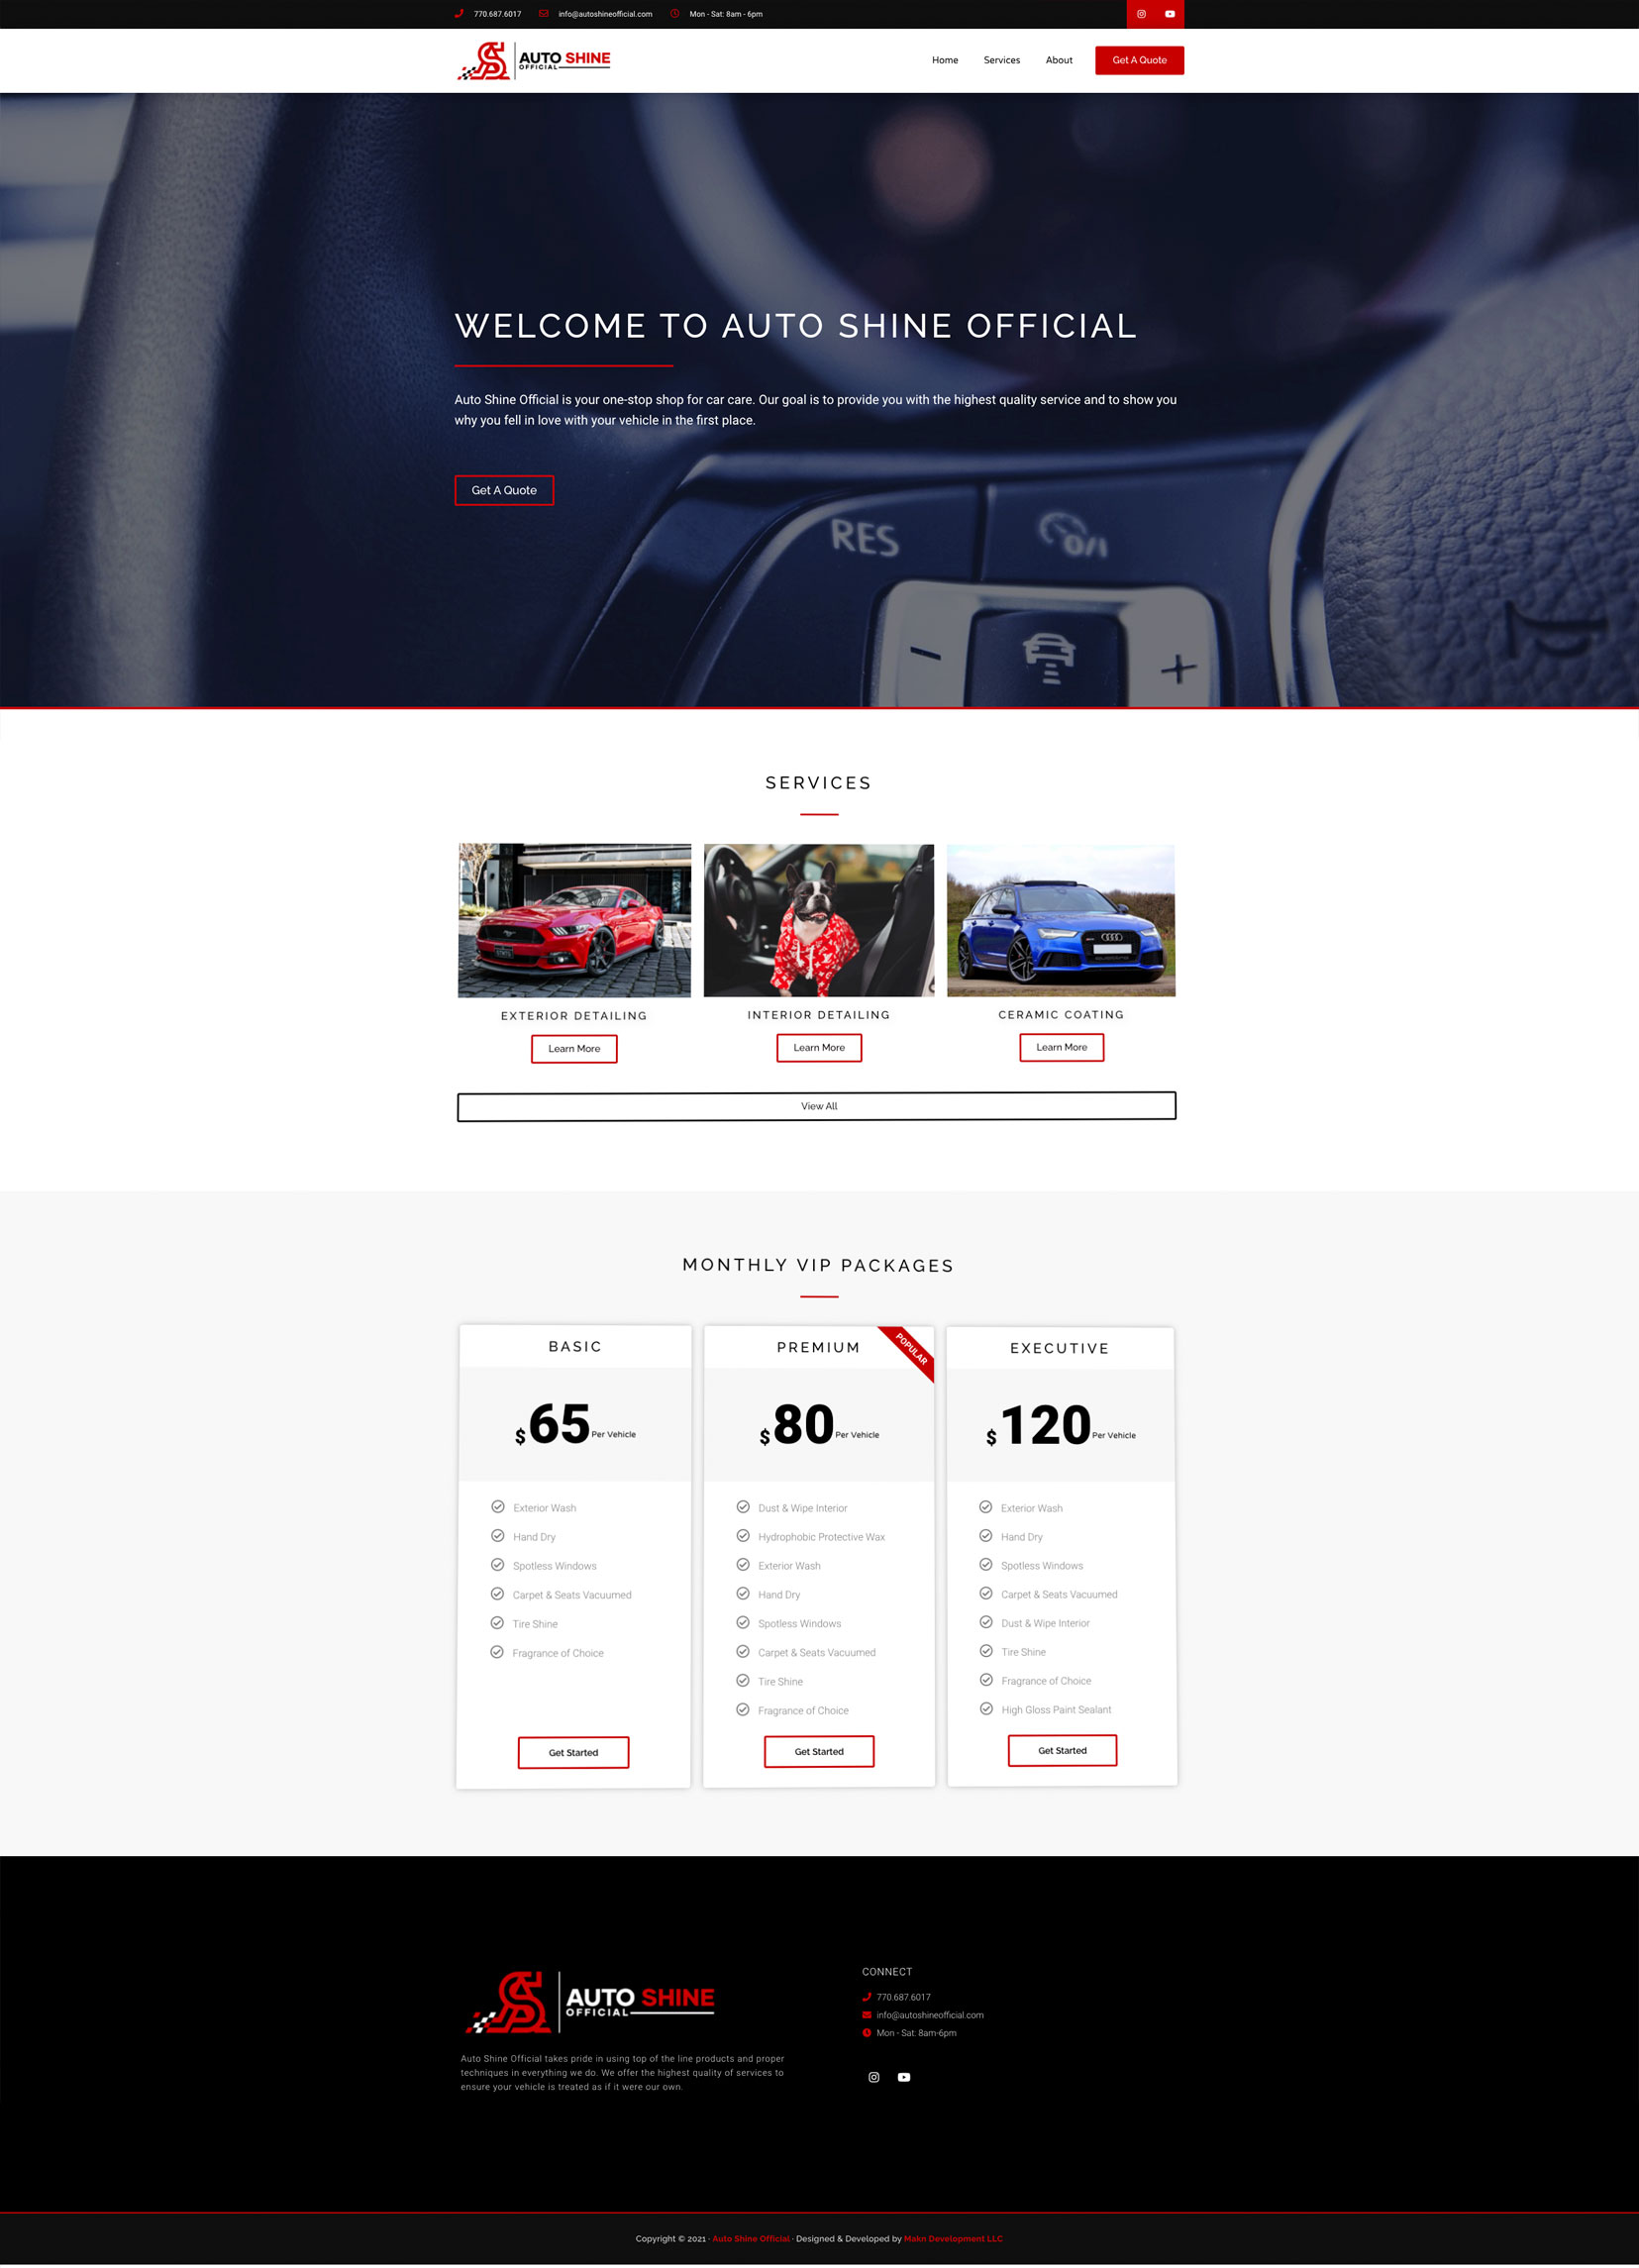 Auto Shine Official Website Example